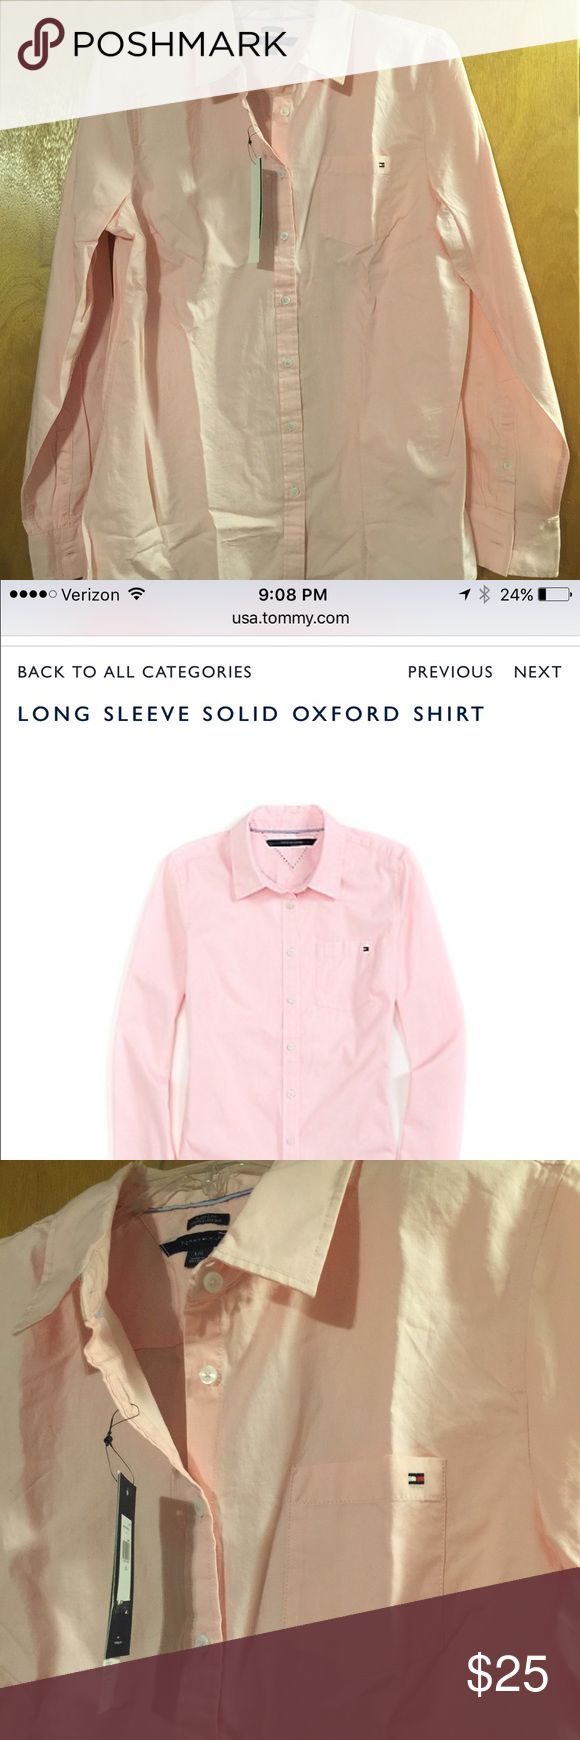 Women's Tommy Hilfiger Button Down Shirt Light pink, long sleeve button down Oxford shirt. Brand new, with tags, Women's size Large Tommy Hilfiger Tops Button Down Shirts